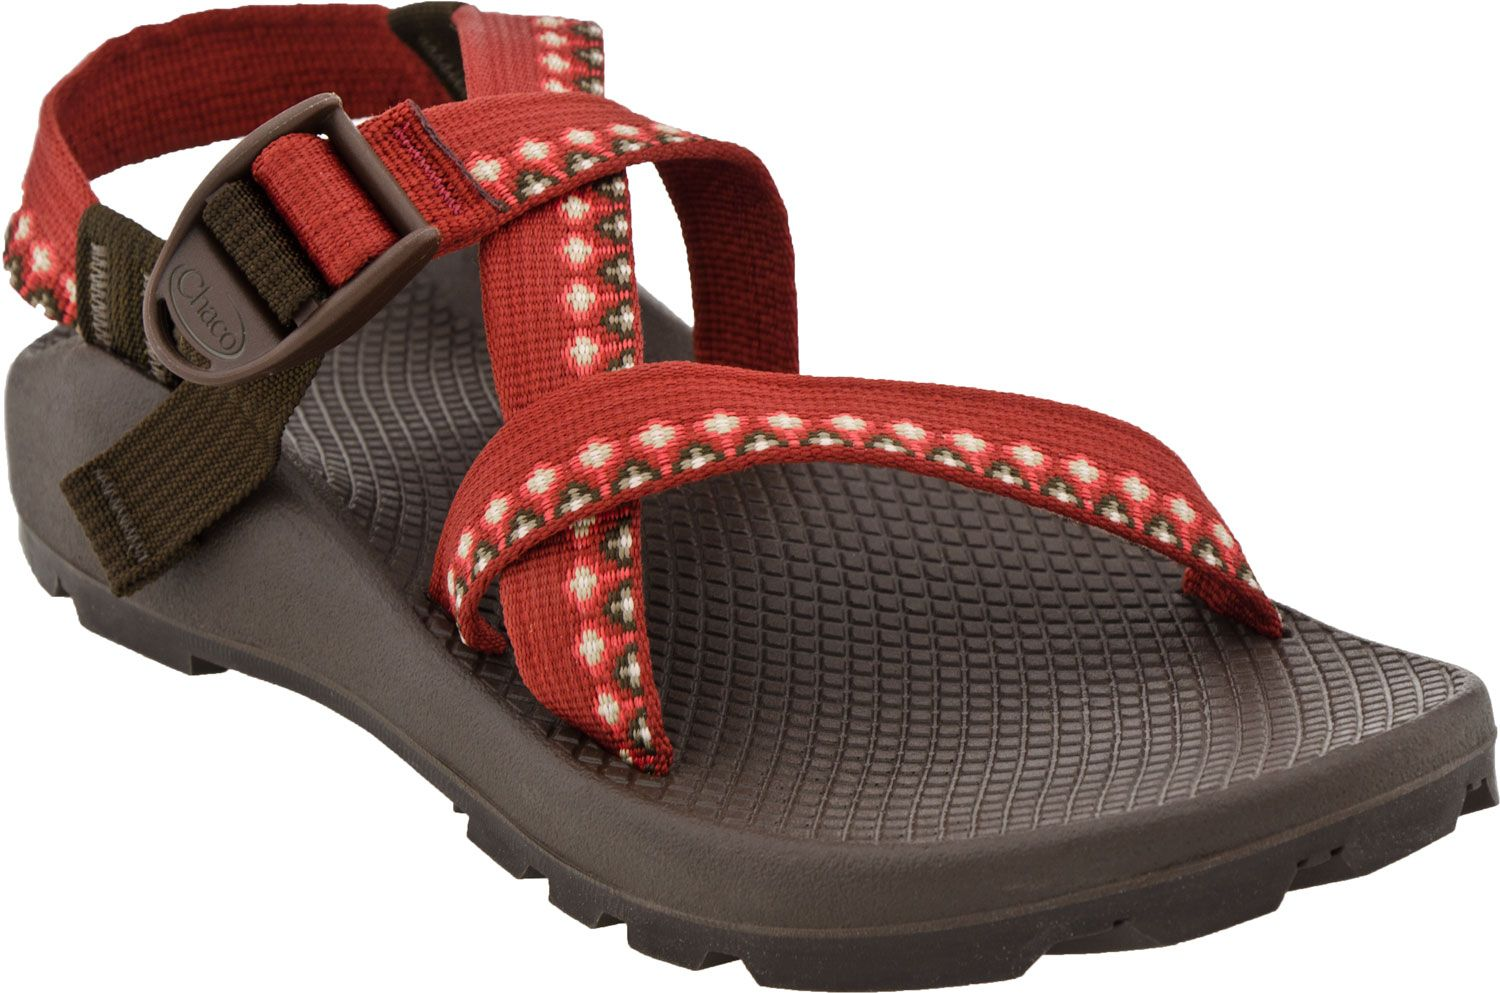 42894798a70e Chaco sandals - Chaco Z1 Vibram Unaweep Womens from www.planetshoes ...